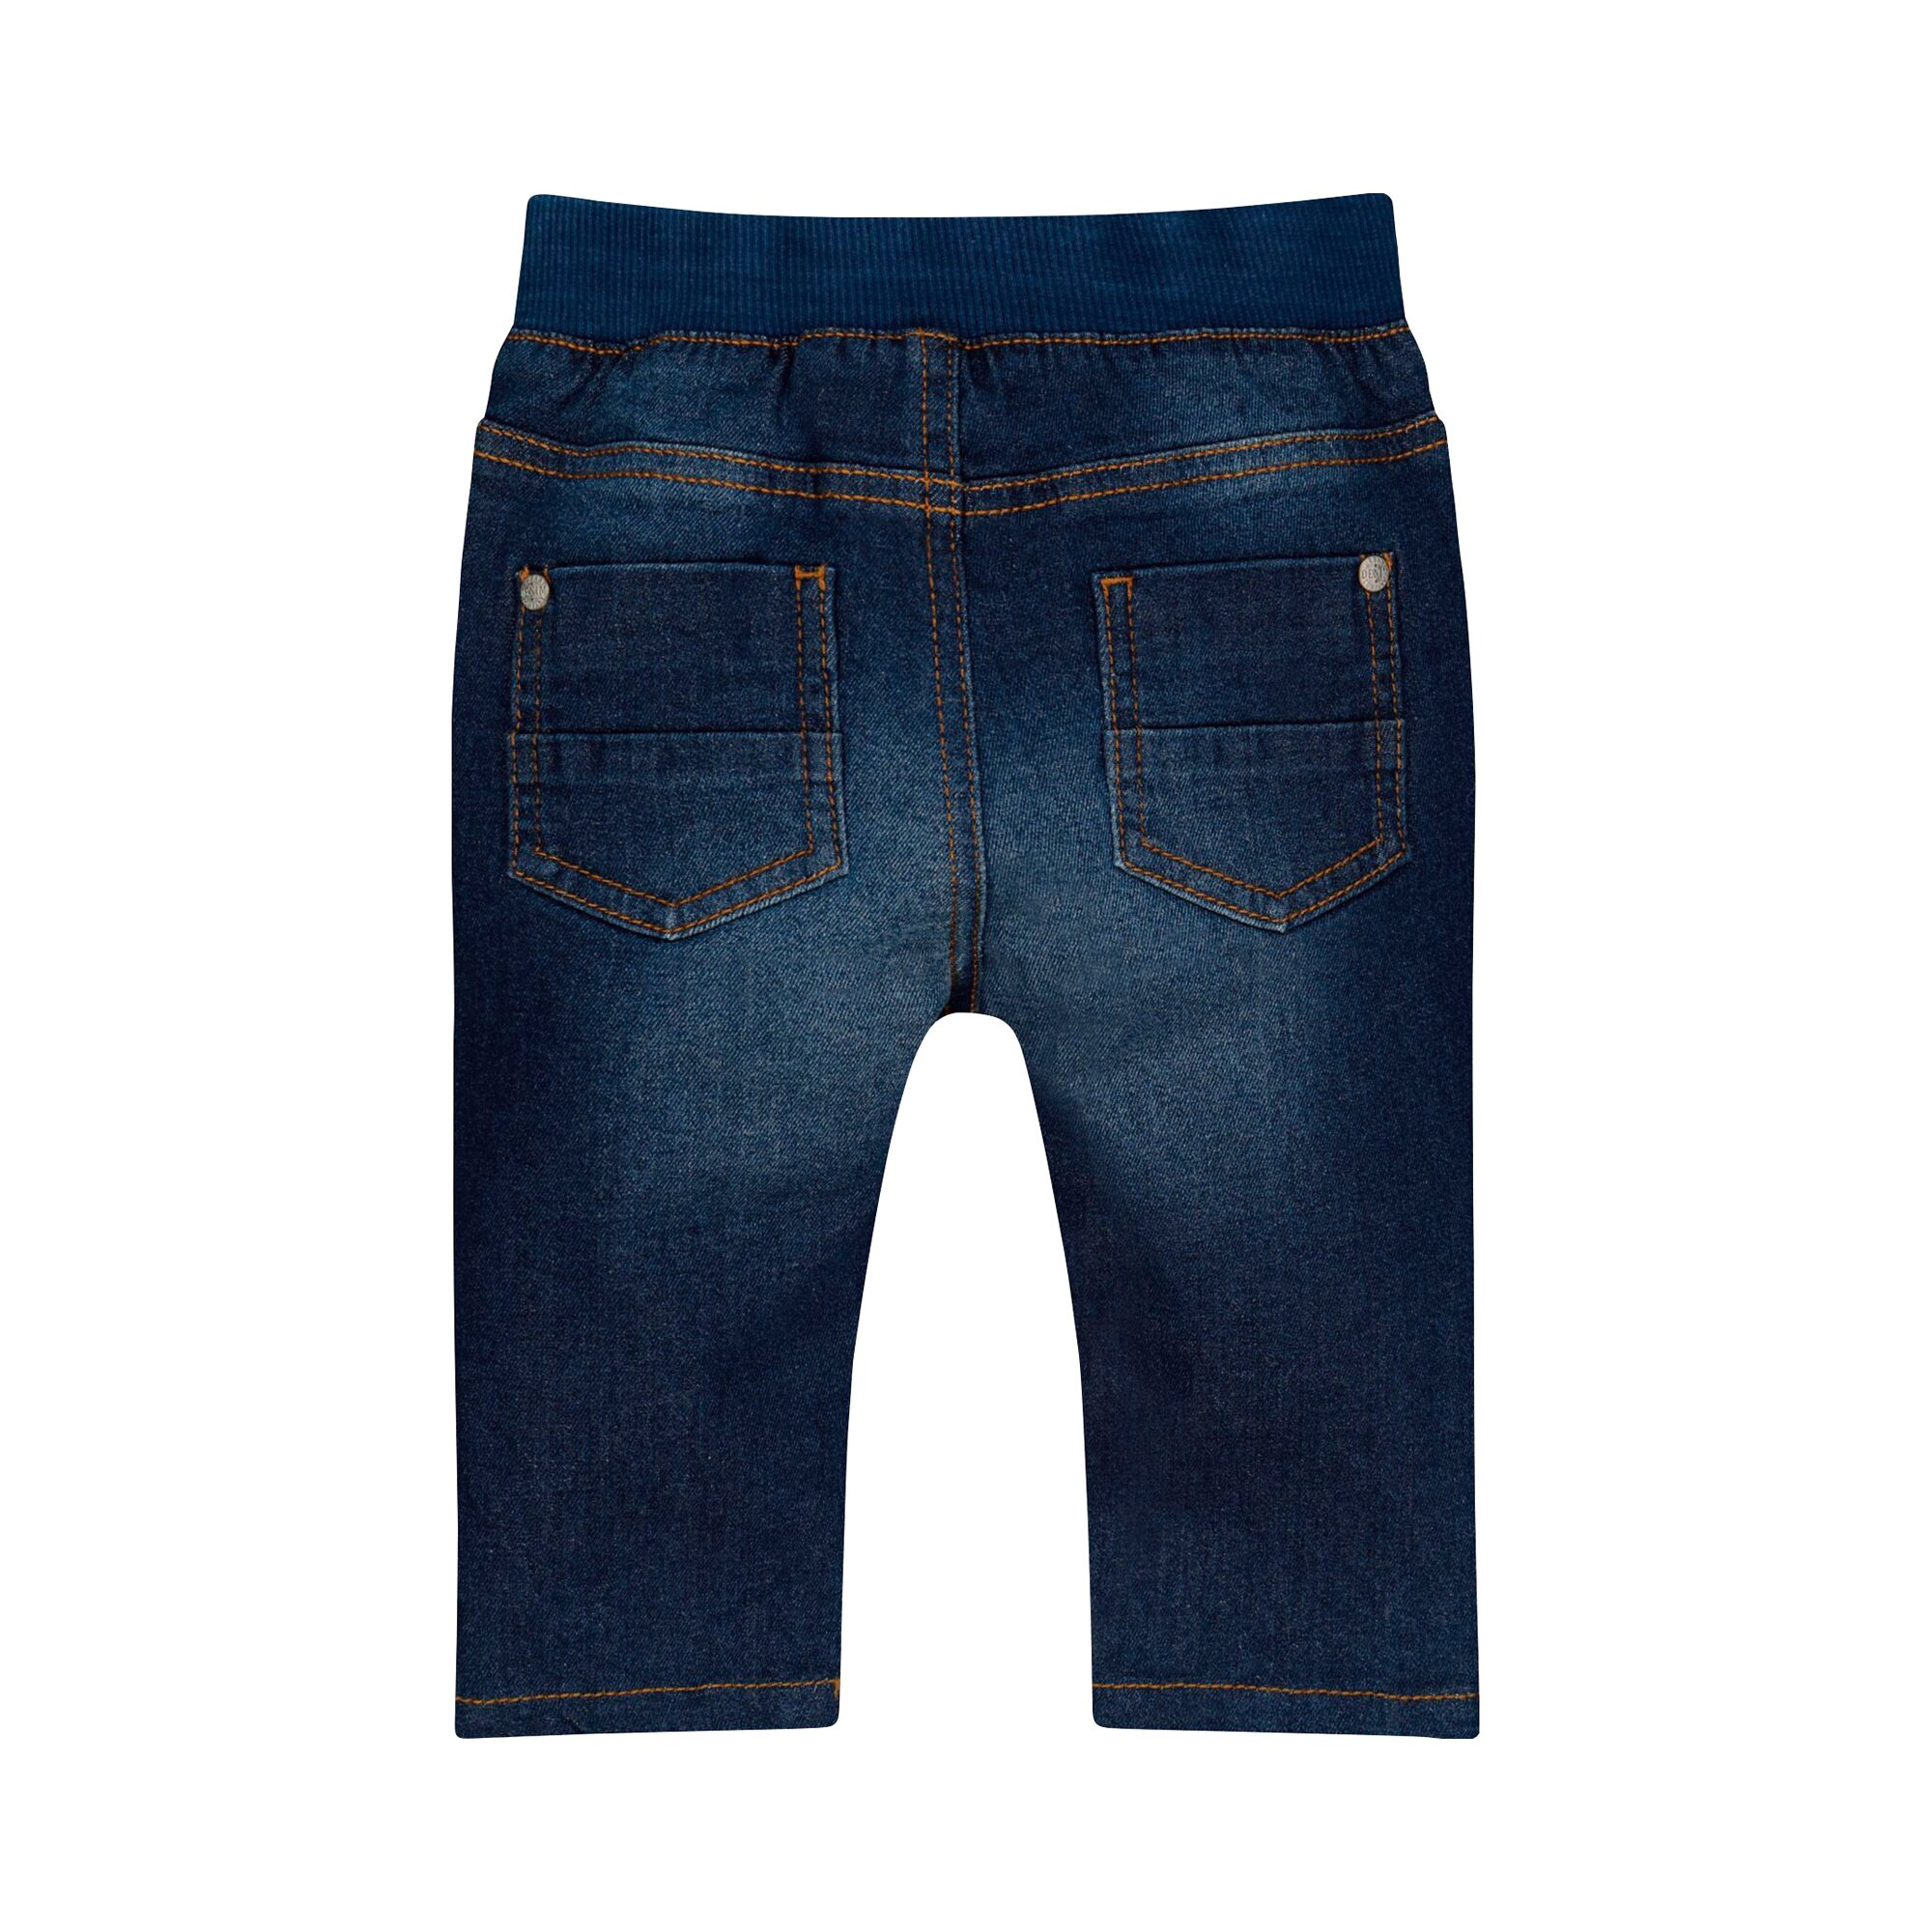 mothercare-jeans-5-pocket